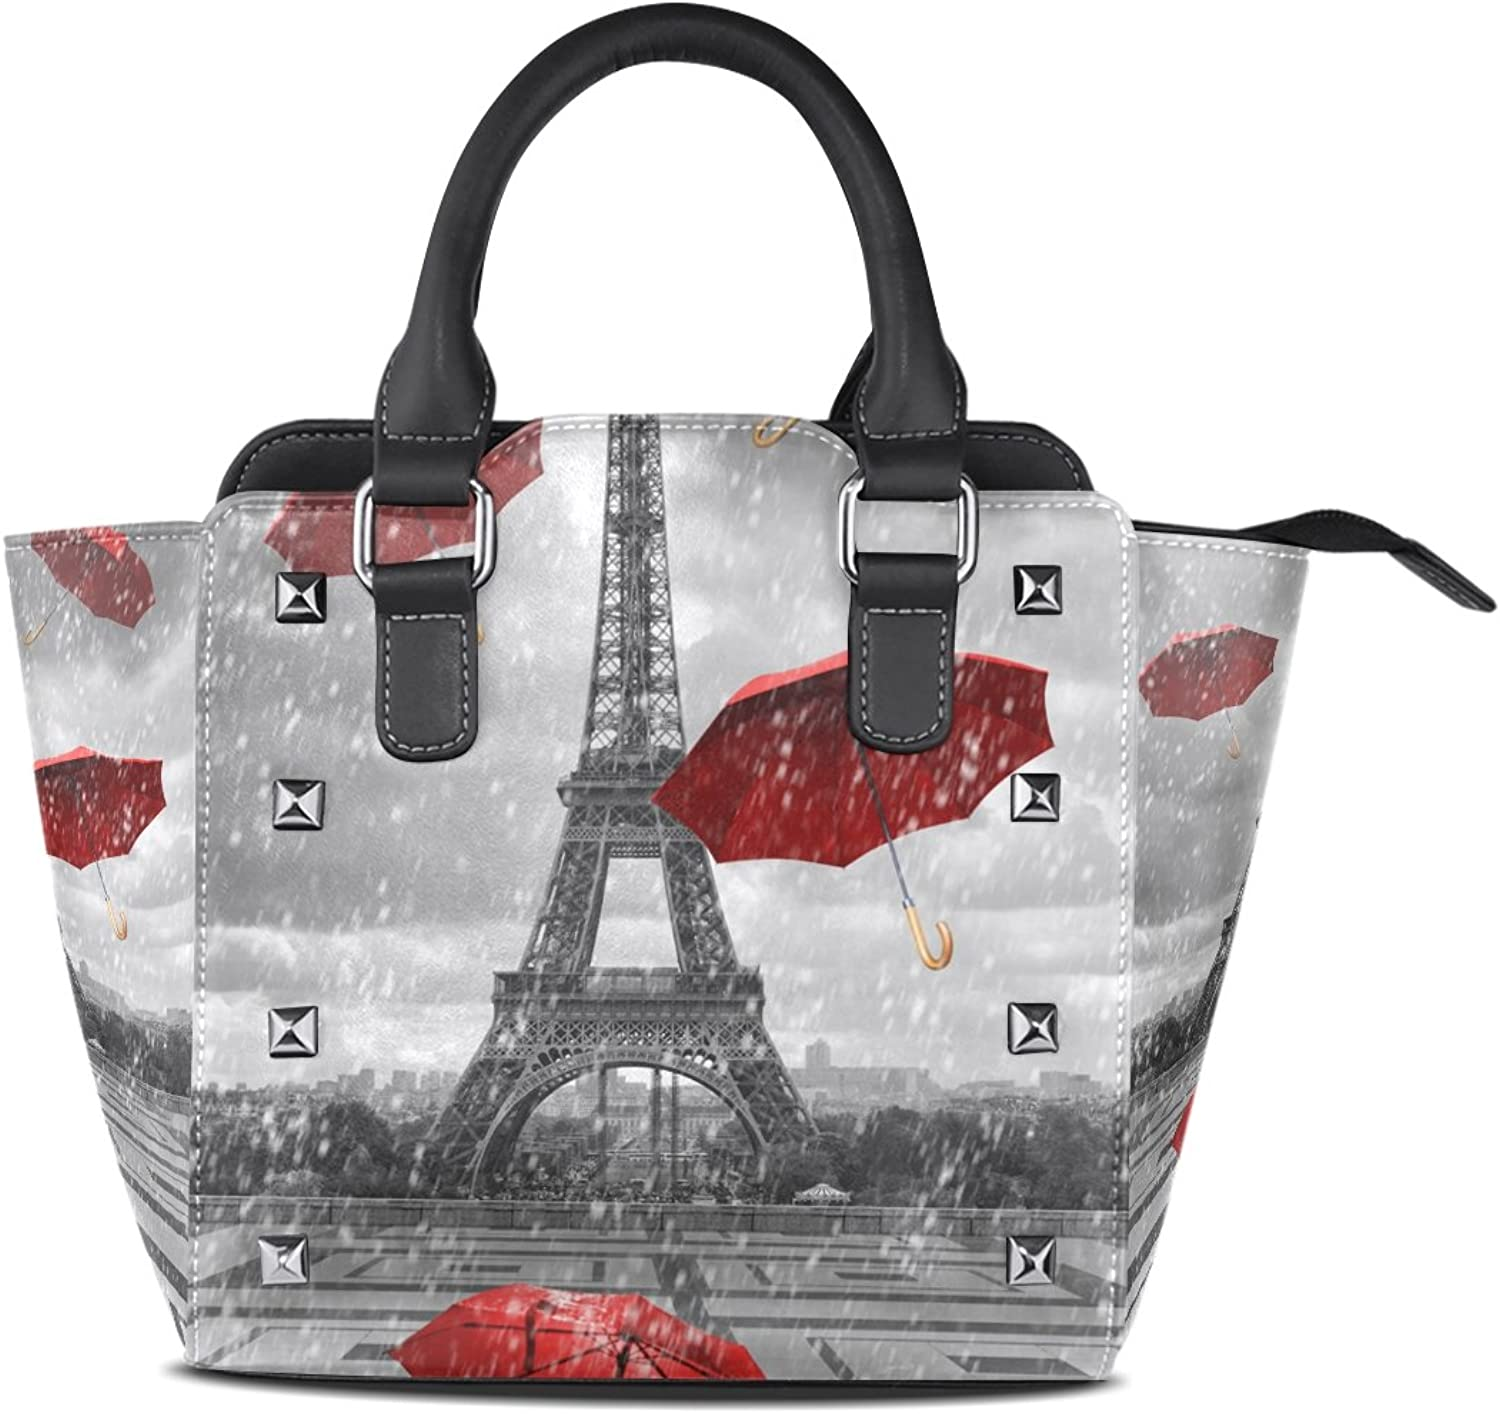 My Little Nest Women's Top Handle Satchel Handbag Eiffel Tower Red Umbrellas Ladies PU Leather Shoulder Bag Crossbody Bag